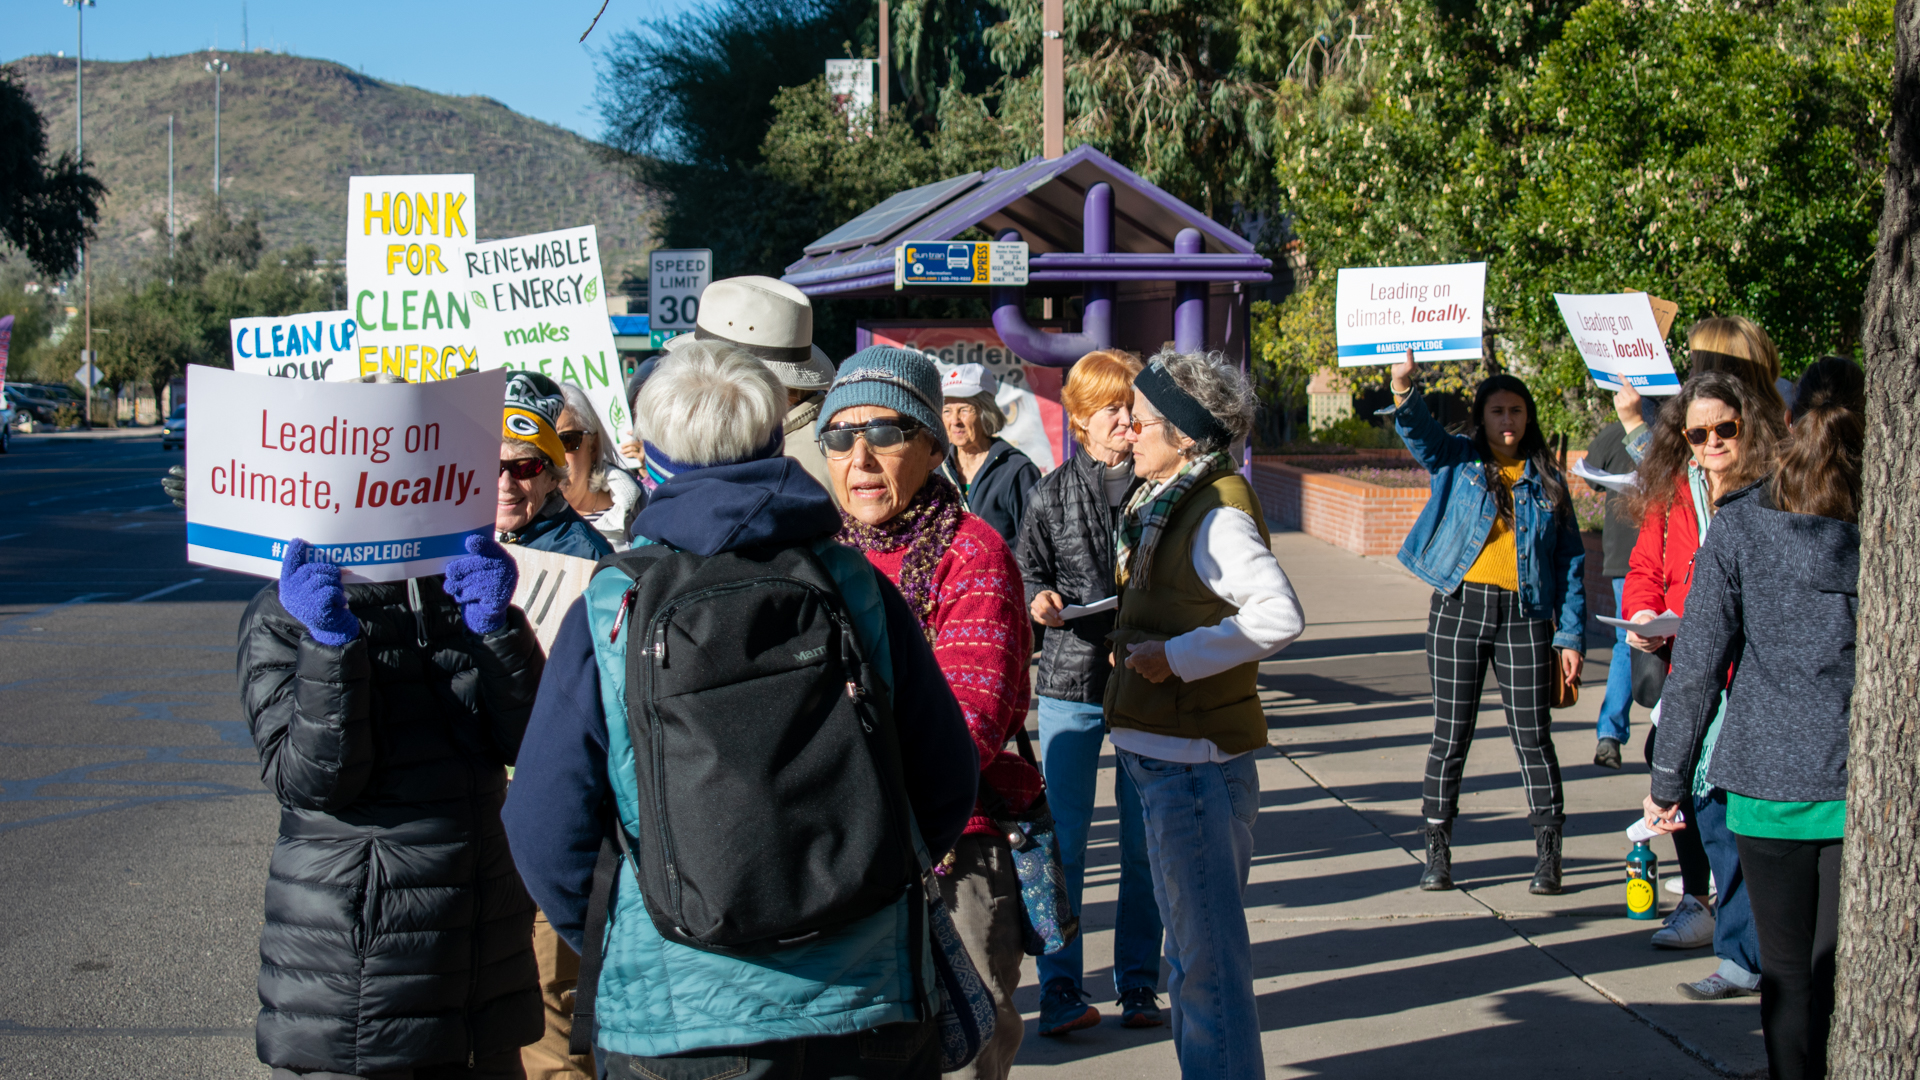 More than 20 people protested Tucson Electric Power's proposed rate hikes outside of the Arizona State Office Building in Tucson on Jan. 13, 2020.